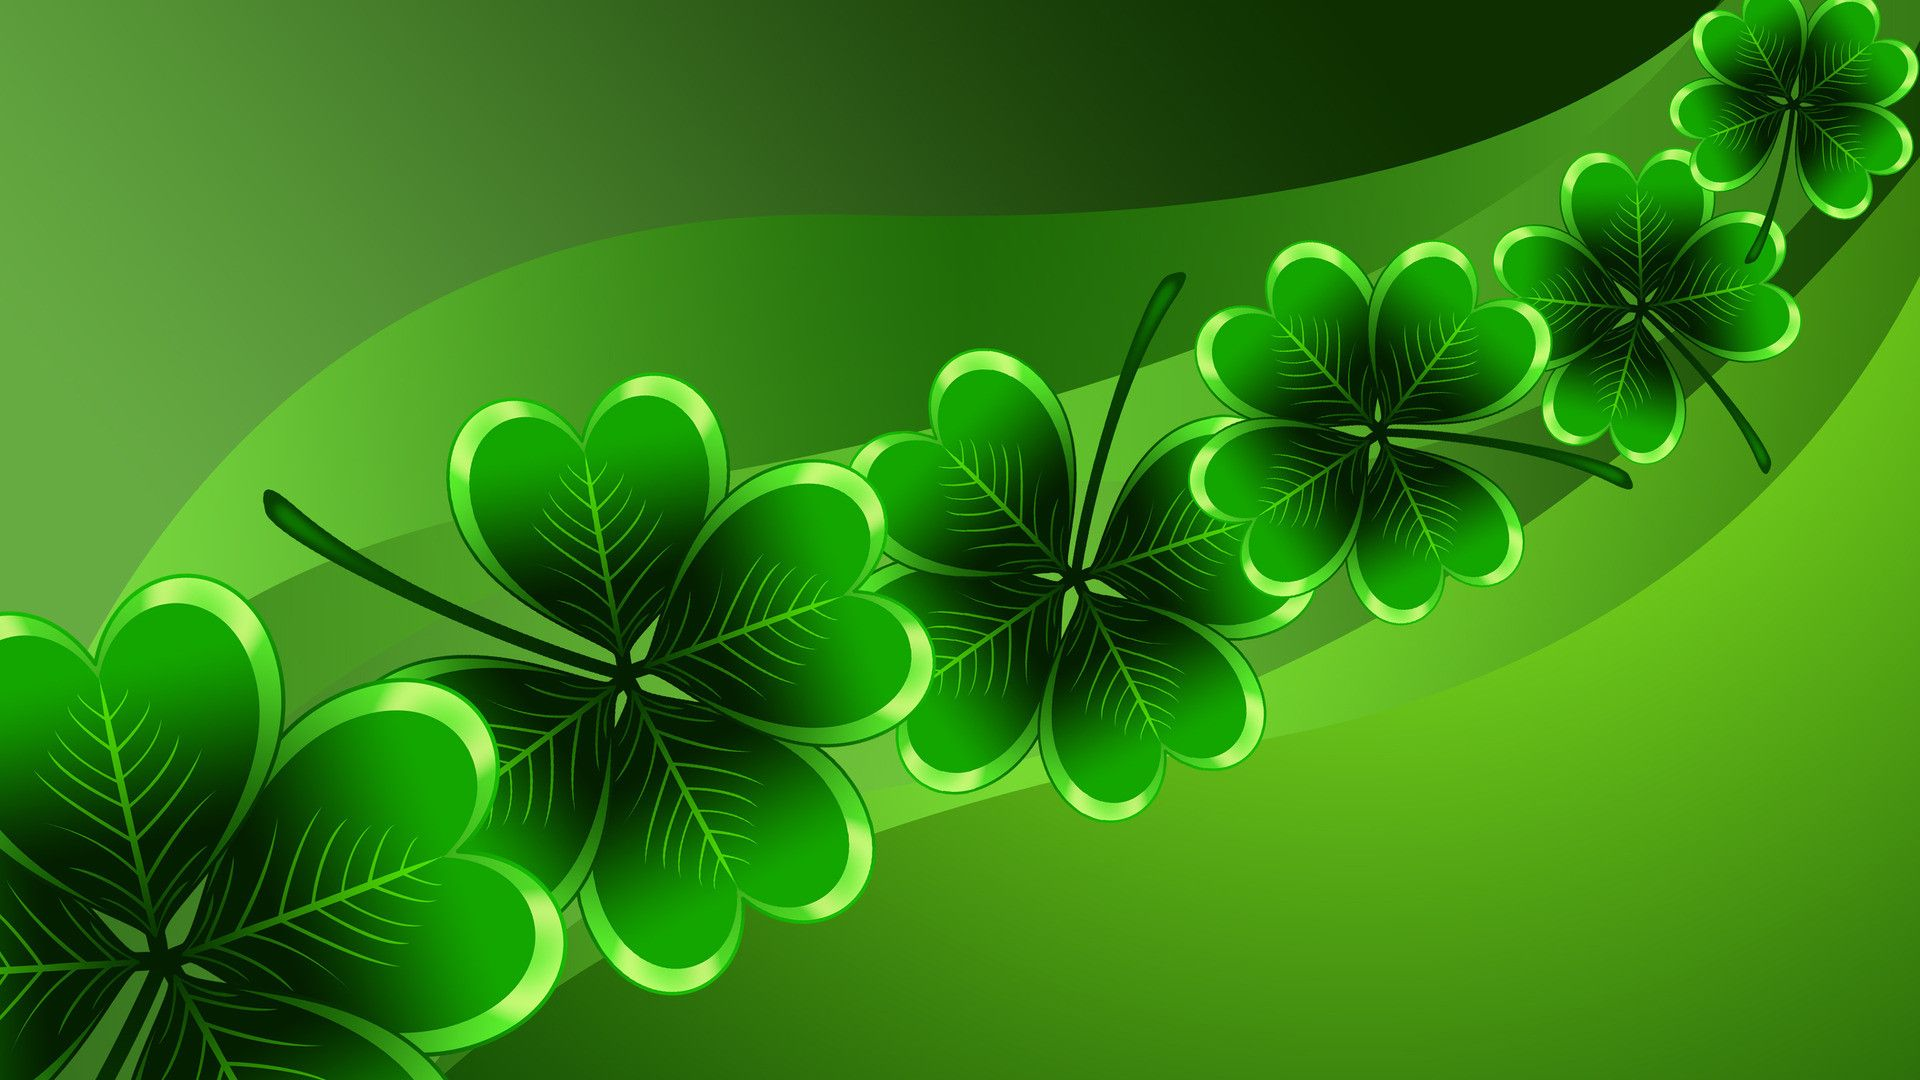 Free Download St Patrick Day Wallpaper Sf Wallpaper 1920x1080 For Your Desktop Mobile Tablet Explore 51 Free St Patrick Wallpaper St Patrick S Day Wallpaper Images Hd St Patrick S Day